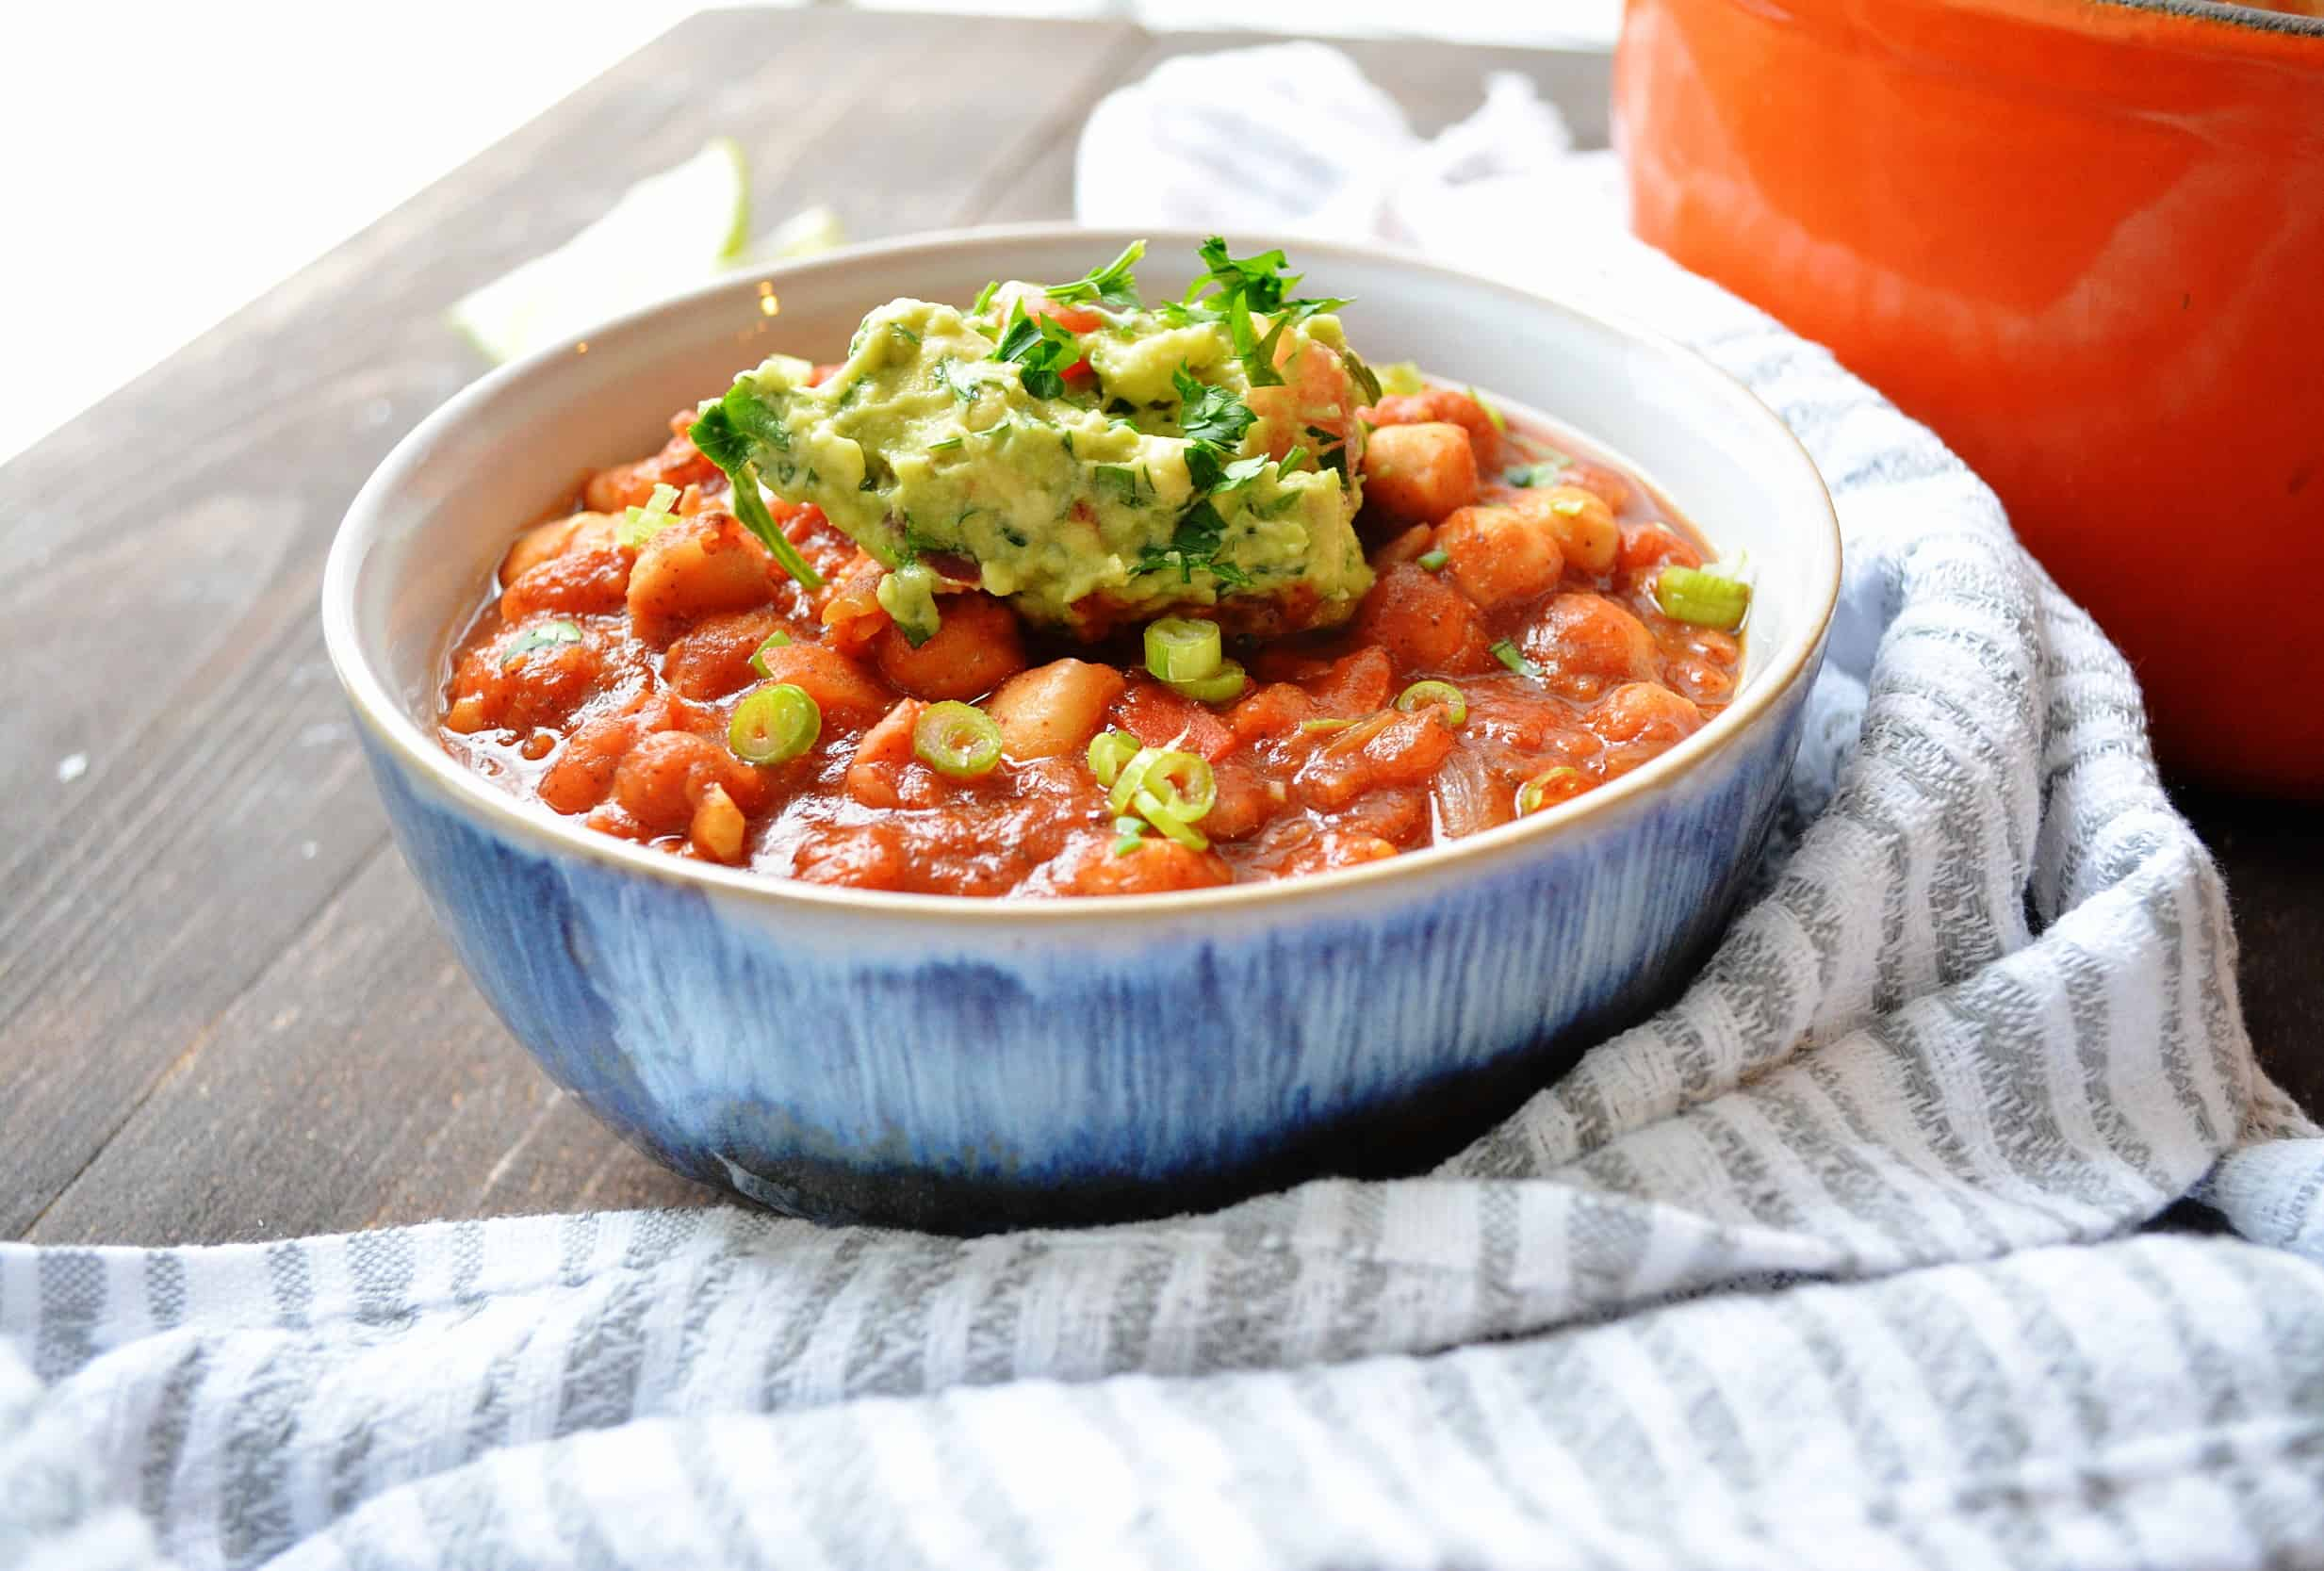 Chickpea and Pinto Bean Chili